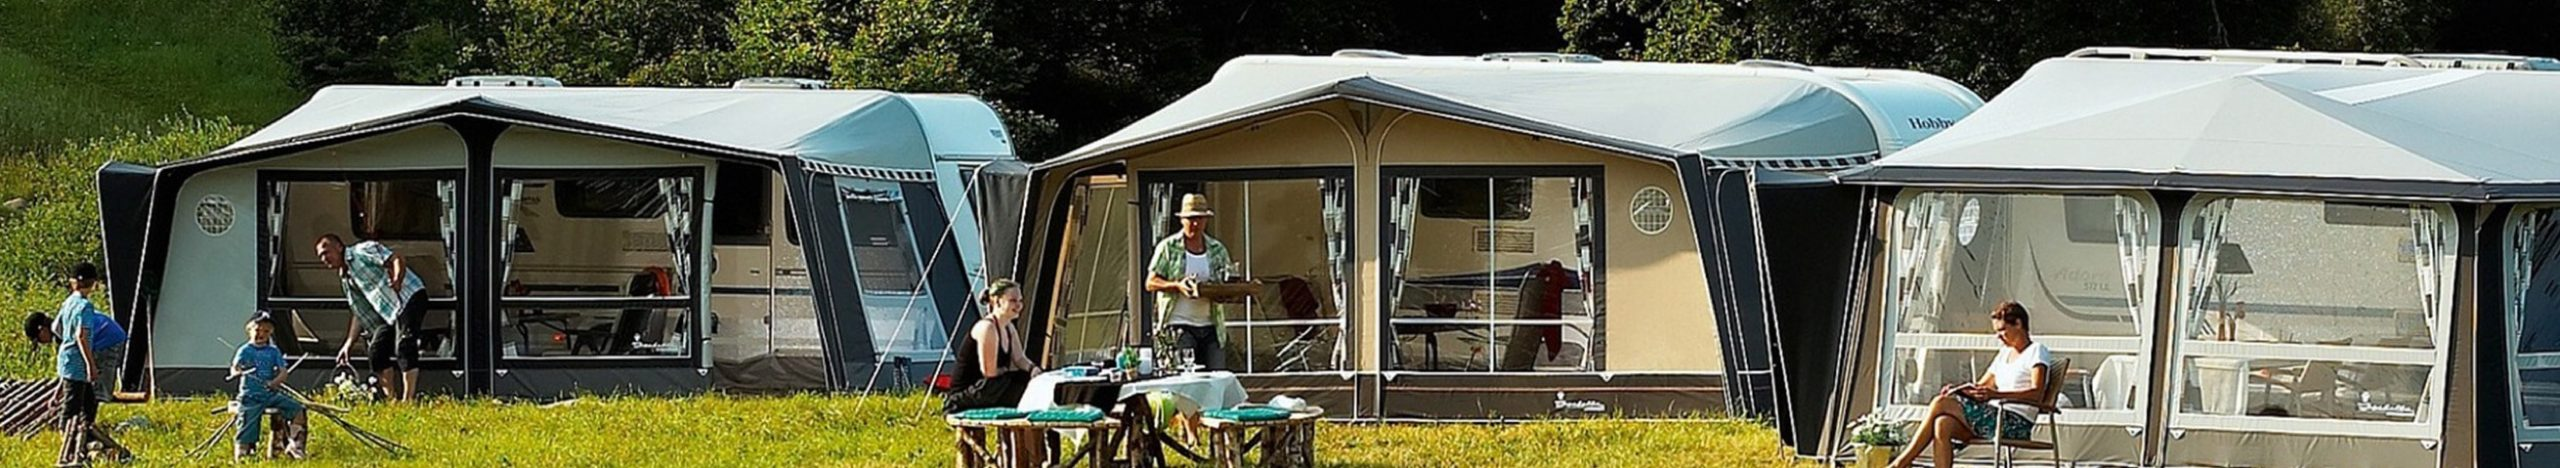 Travel Diaries – Caravan Holiday in Brittany